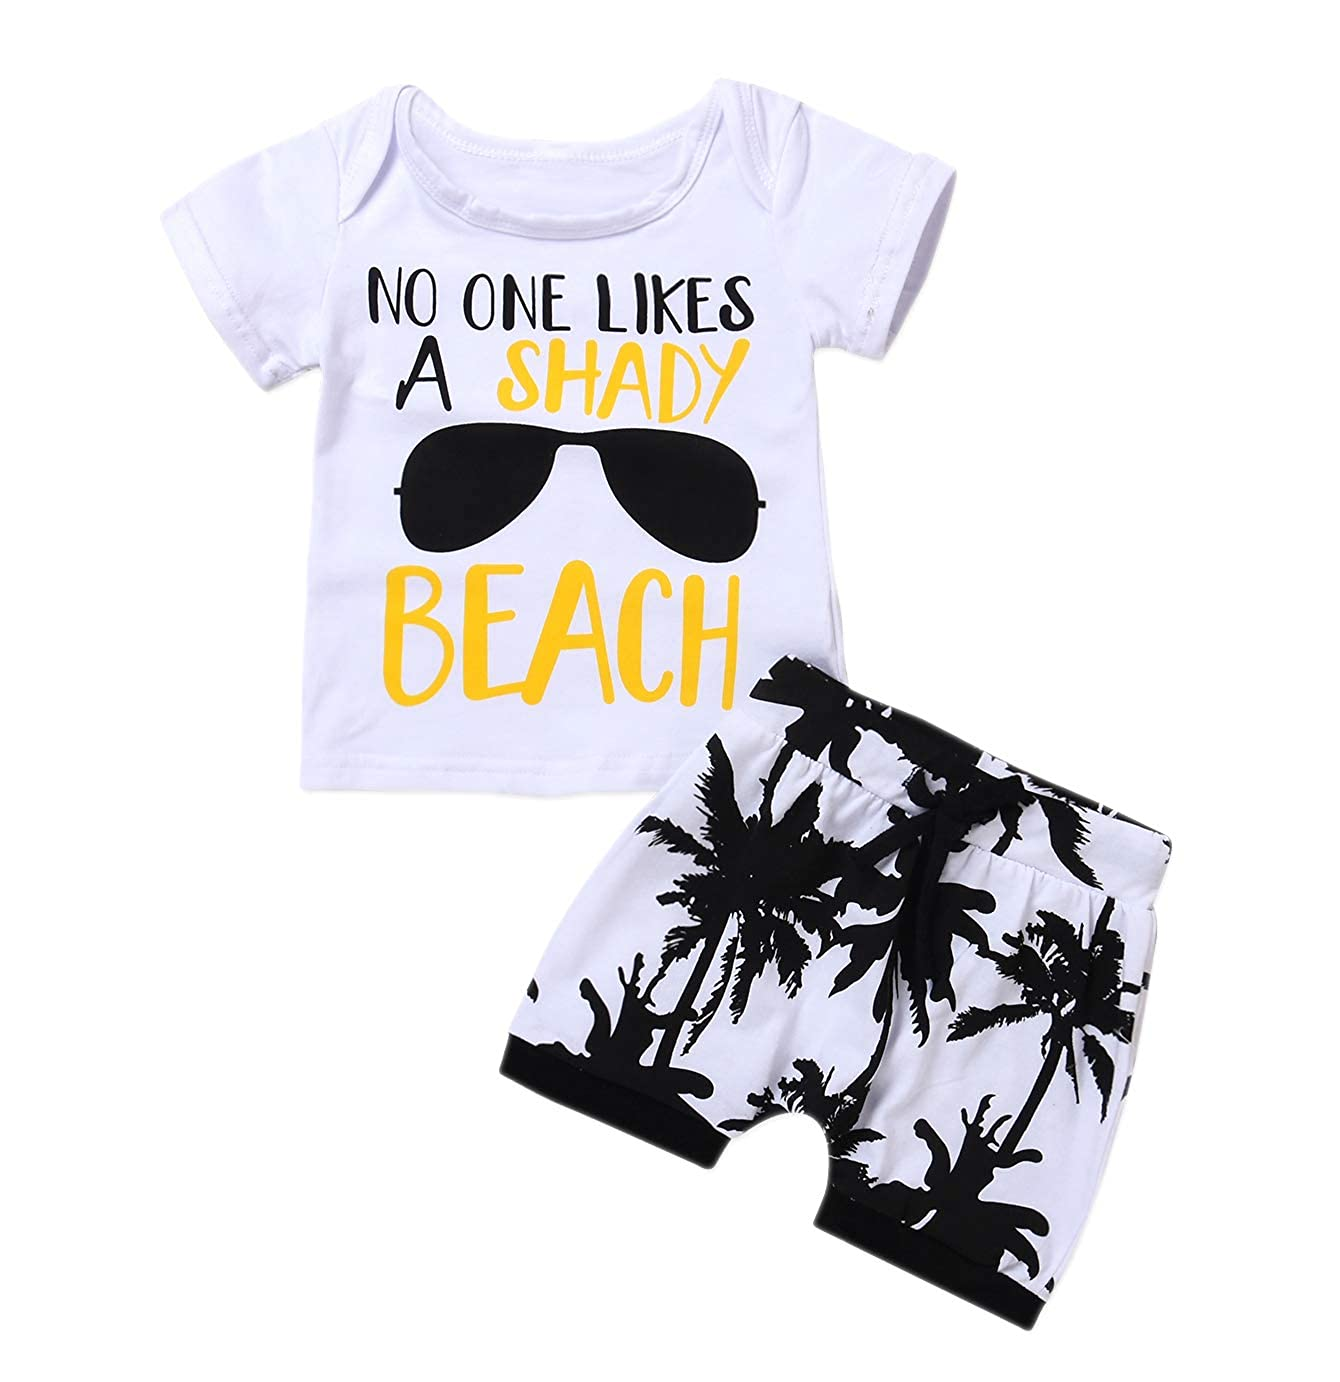 Younger star Toddler Baby Boys Girls Shady Beach Glasses Shirt and Palm Shorts Set